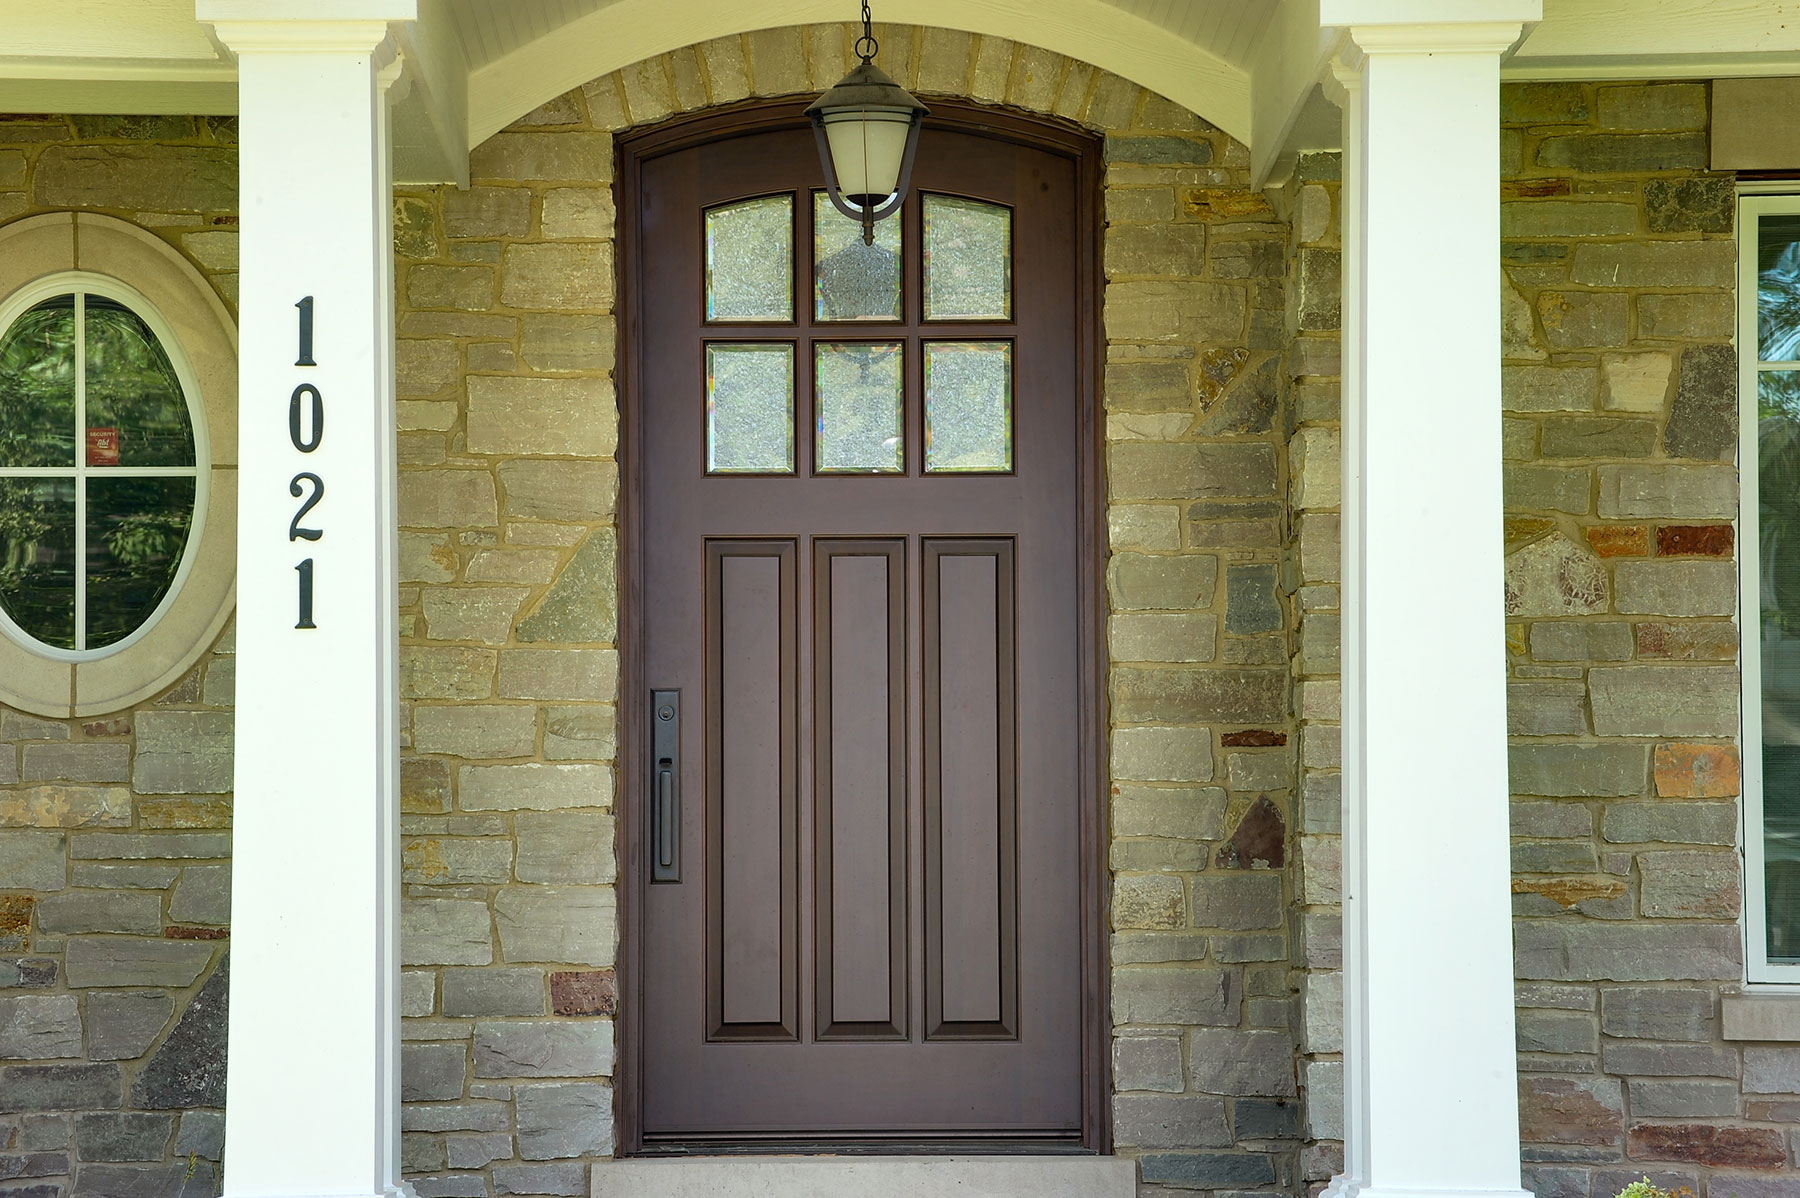 Custom Wood Front Entry Doors | solid mahogany wood front entry door, privacy glass DB-012WA - Glenview Doors - Custom Doors in Chicago